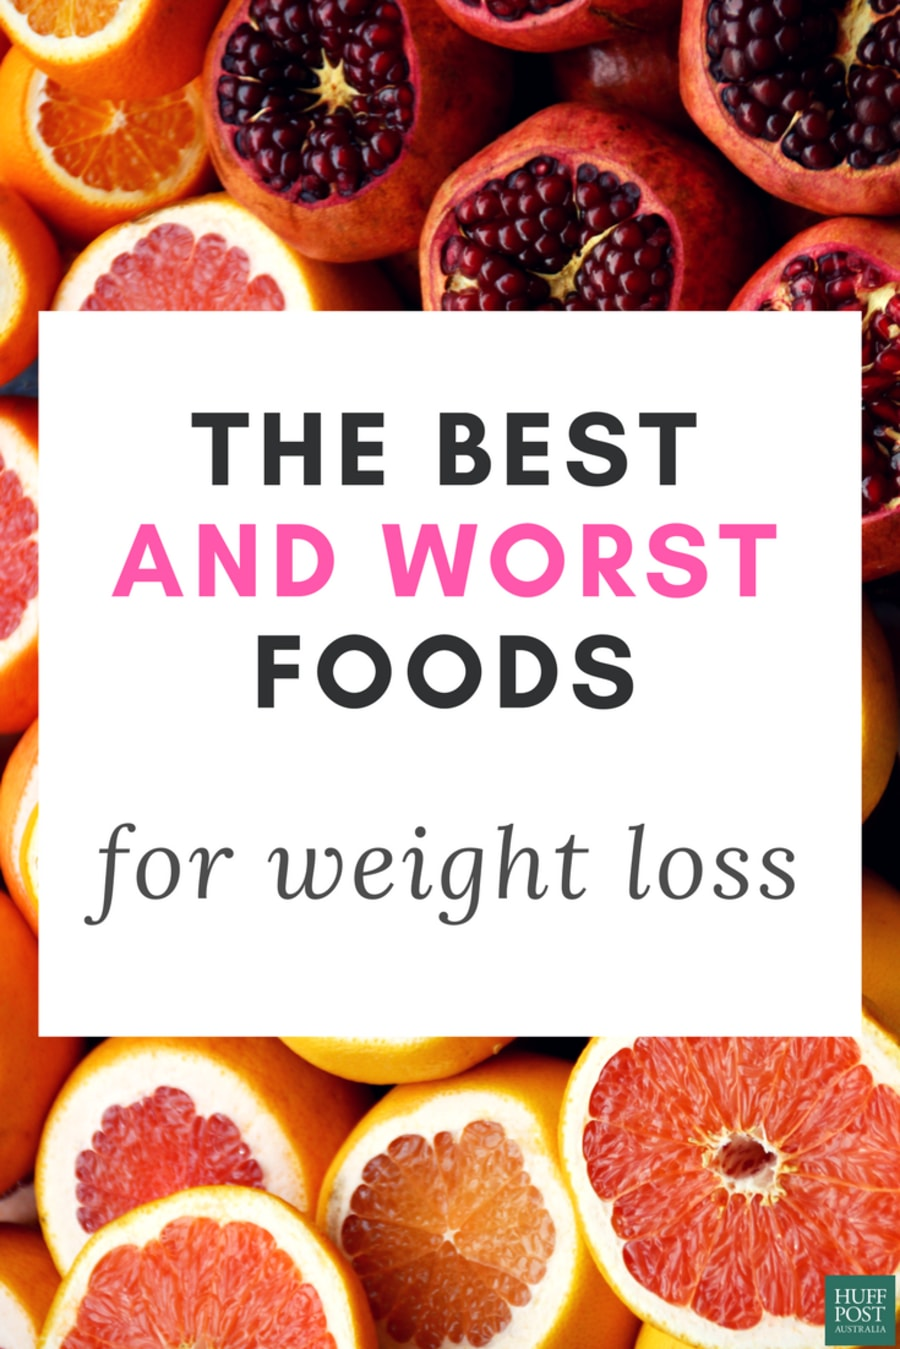 Here Are The Best (And Worst) Foods For Weight